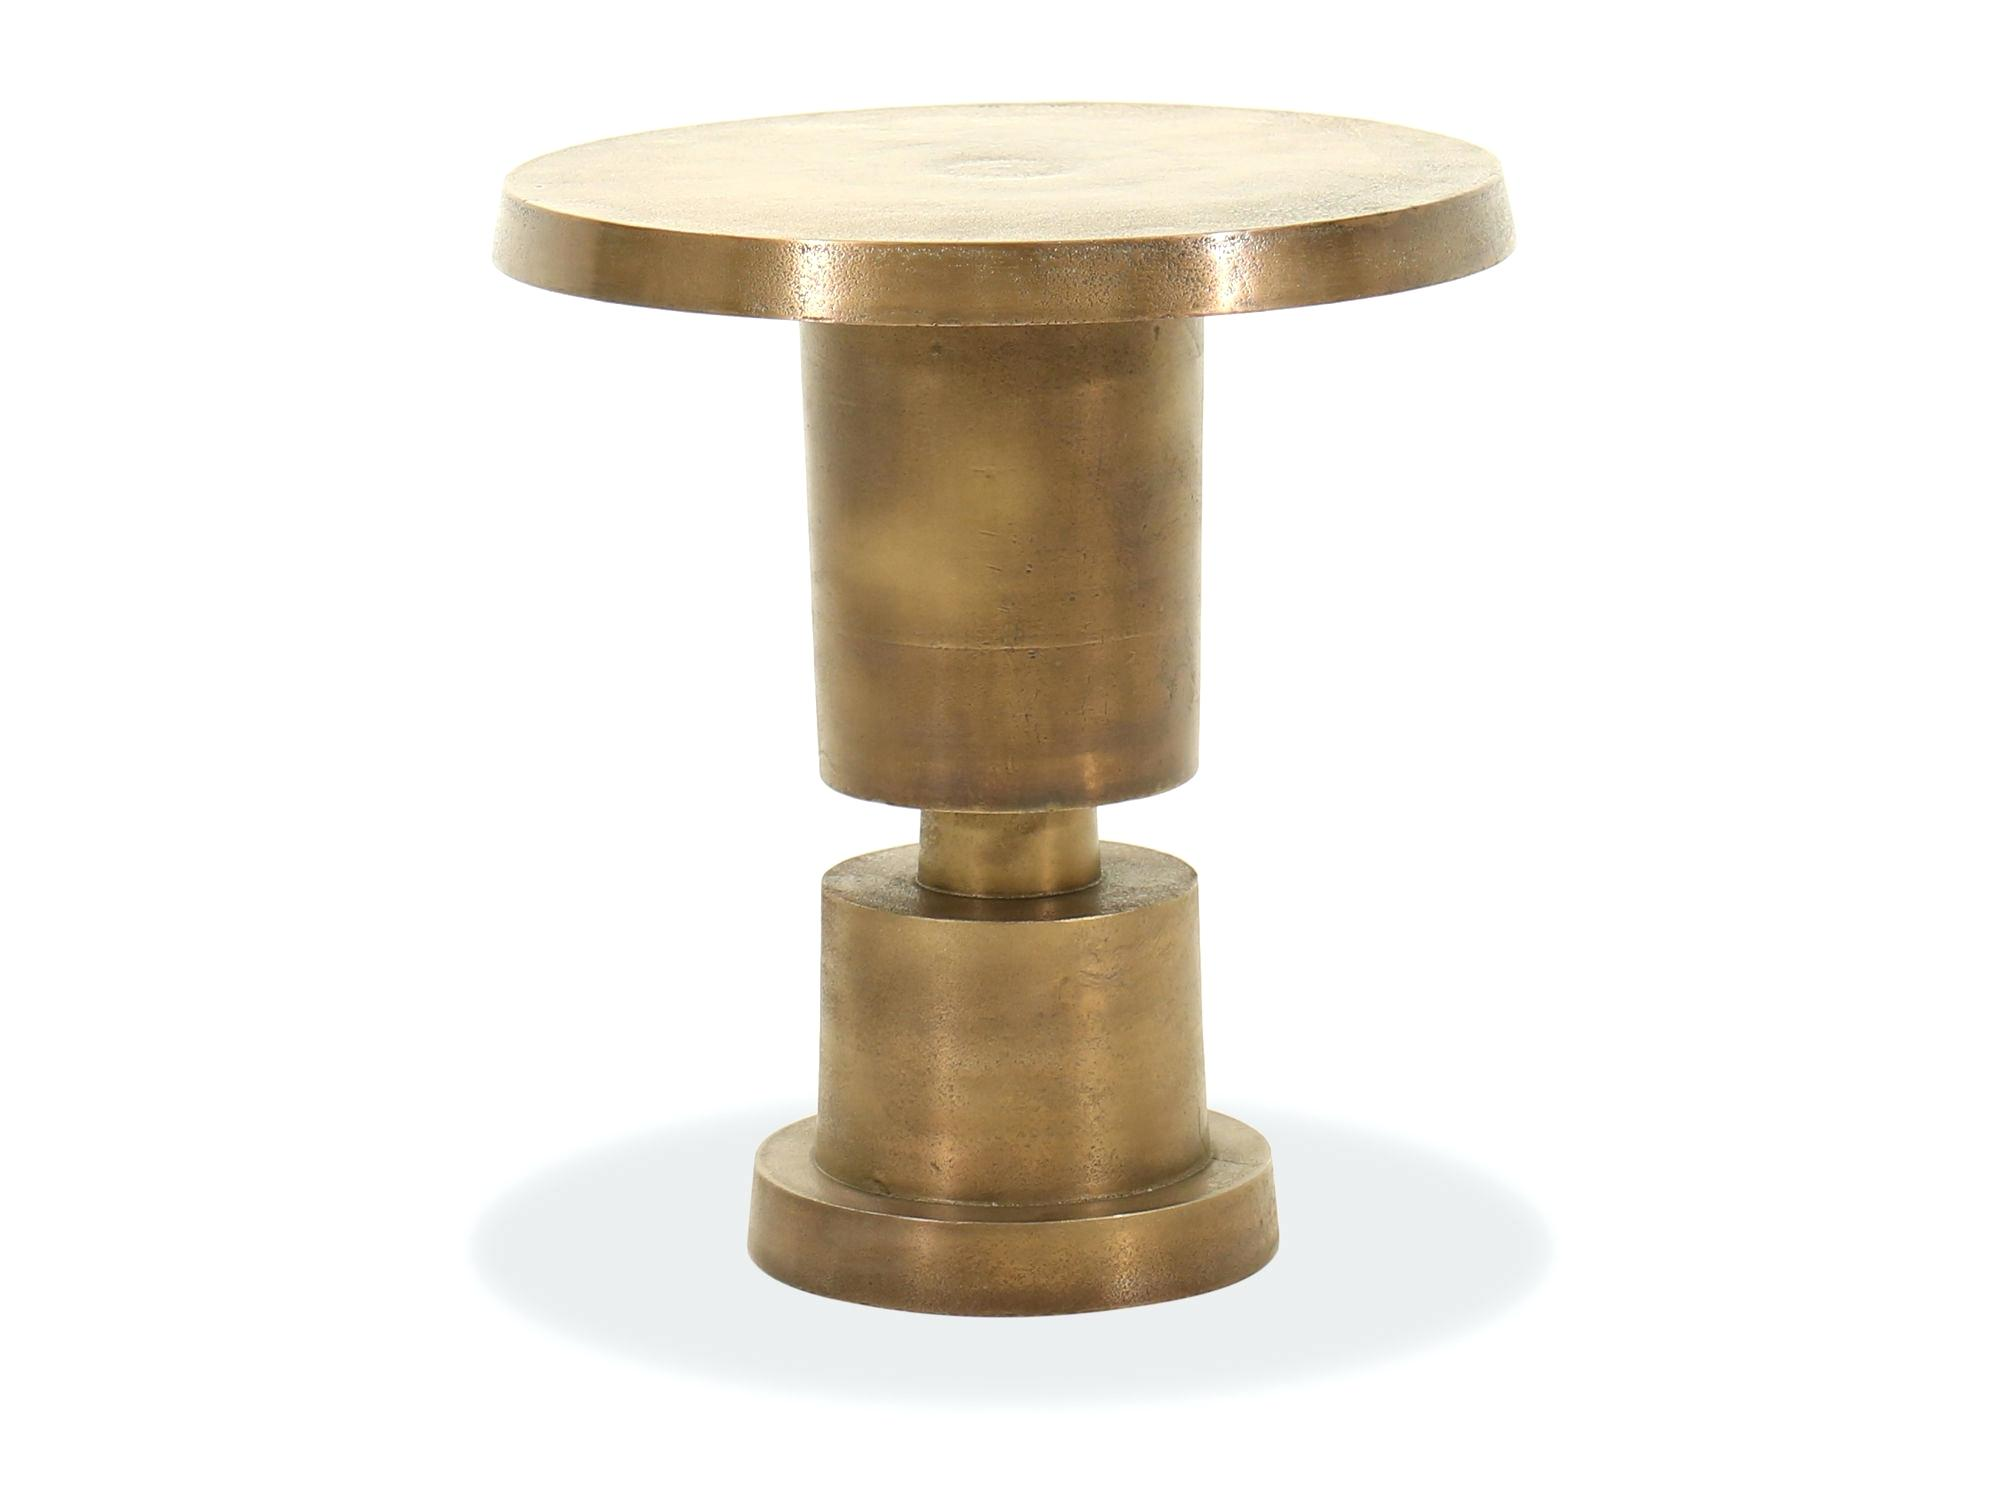 gold cala hammered drum accent table awesome furniture for wood conical base aluminum brothers kitchen marvelous cylindrical ceramic full size target changing outdoor grill work